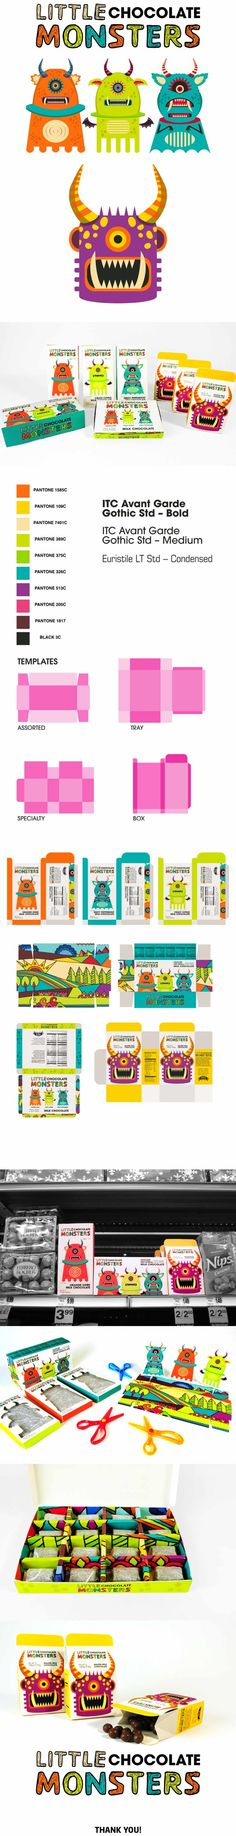 Project done for Intro to Packaging Class at The Art Institute of California - San Francisco.LITTLE CHOCOLATE MONSTERS brand identity is created to be enjoyed by children and adults who are kids at heart. Quirky characters and handmade logotype brings e… Kids Packaging, Candy Packaging, Beauty Packaging, Corporate Design, Branding Design, Kid Drinks, Monster Design, Behance, Heart For Kids